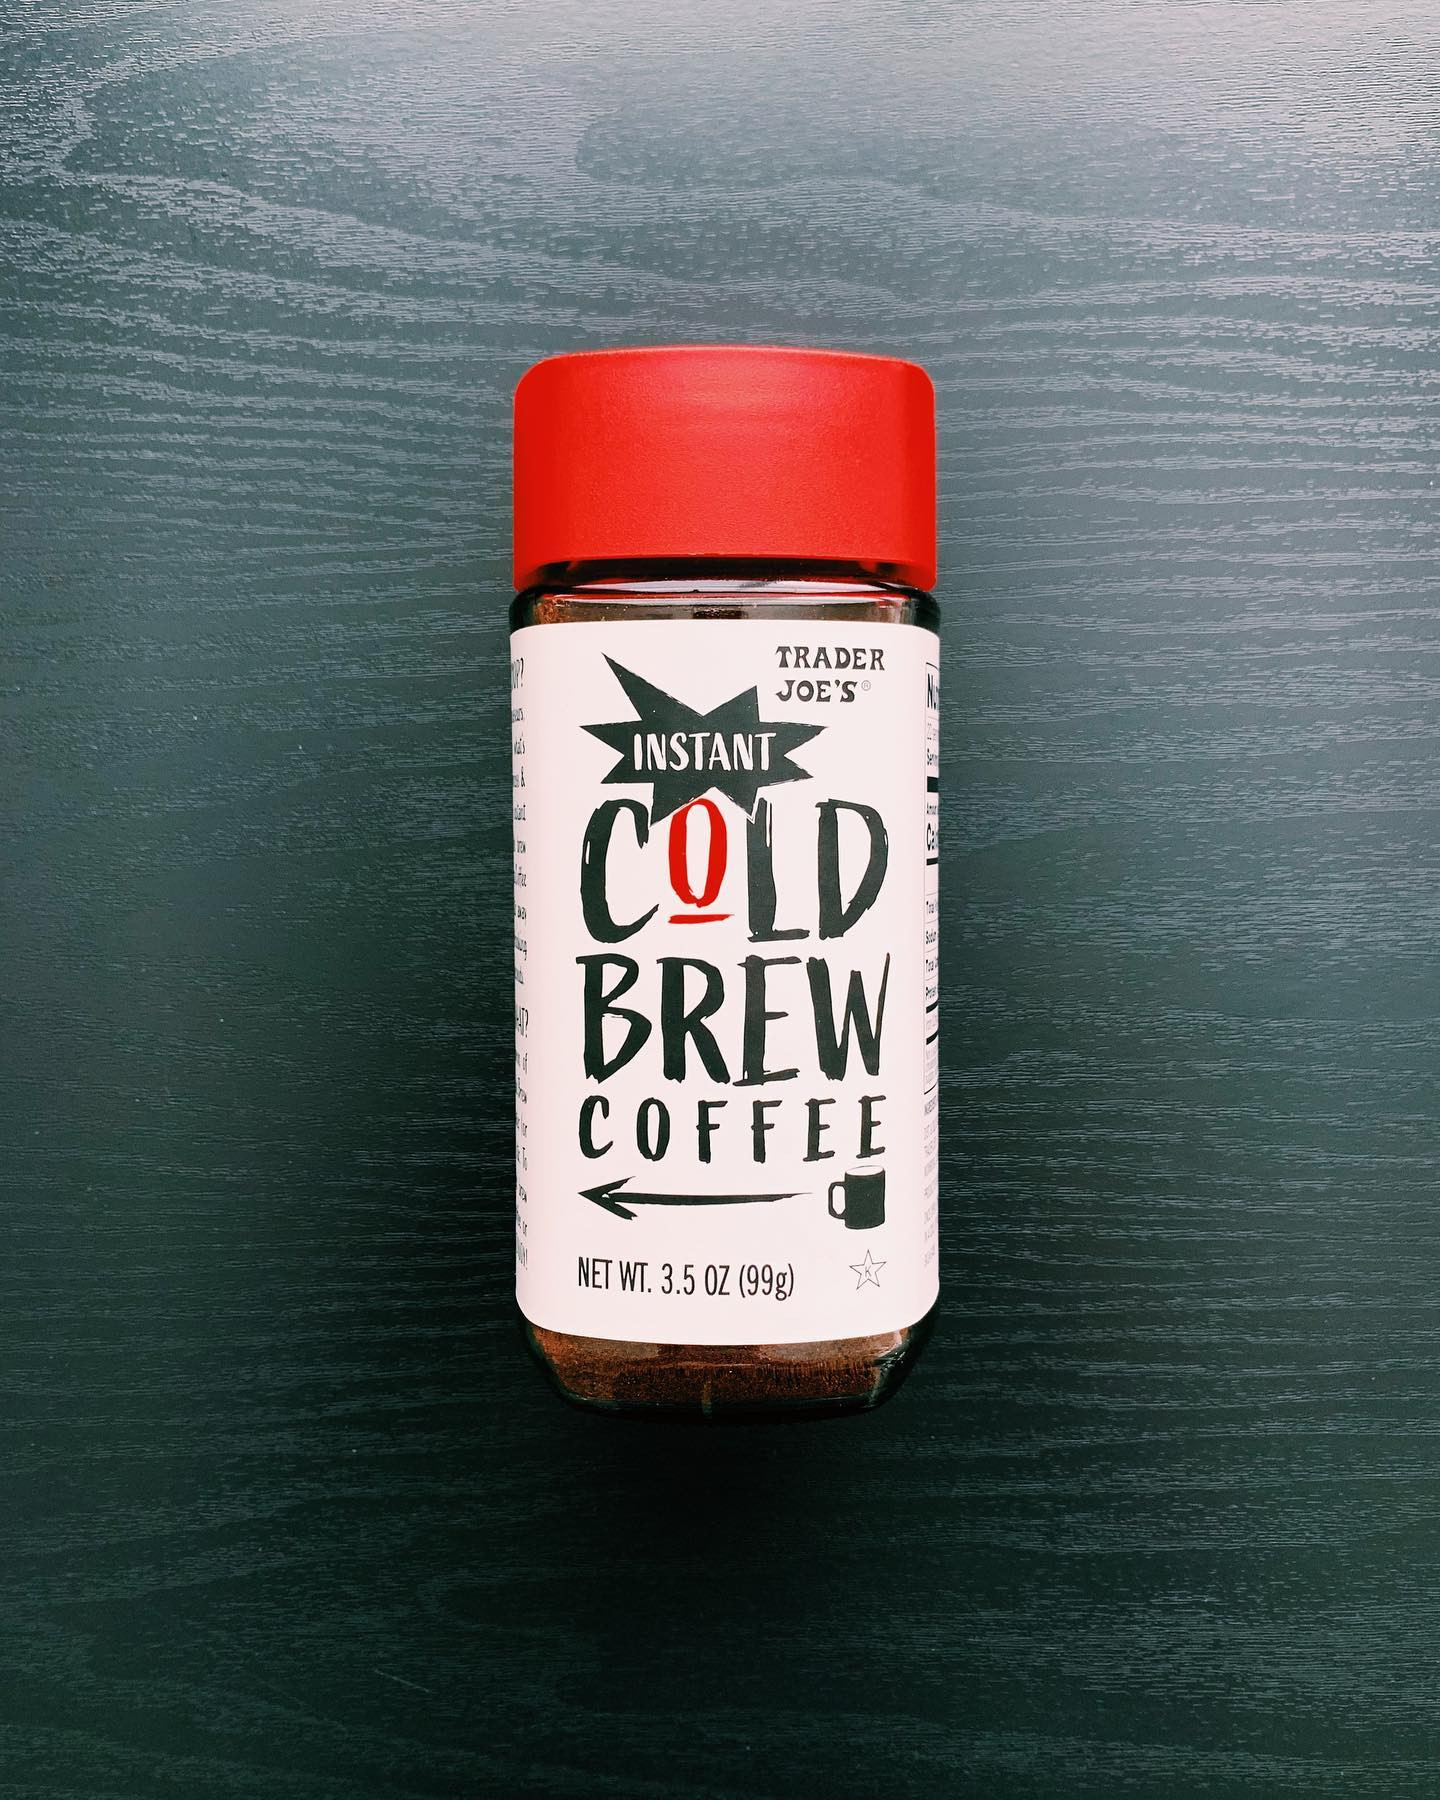 Instant Cold Brew: 7/10